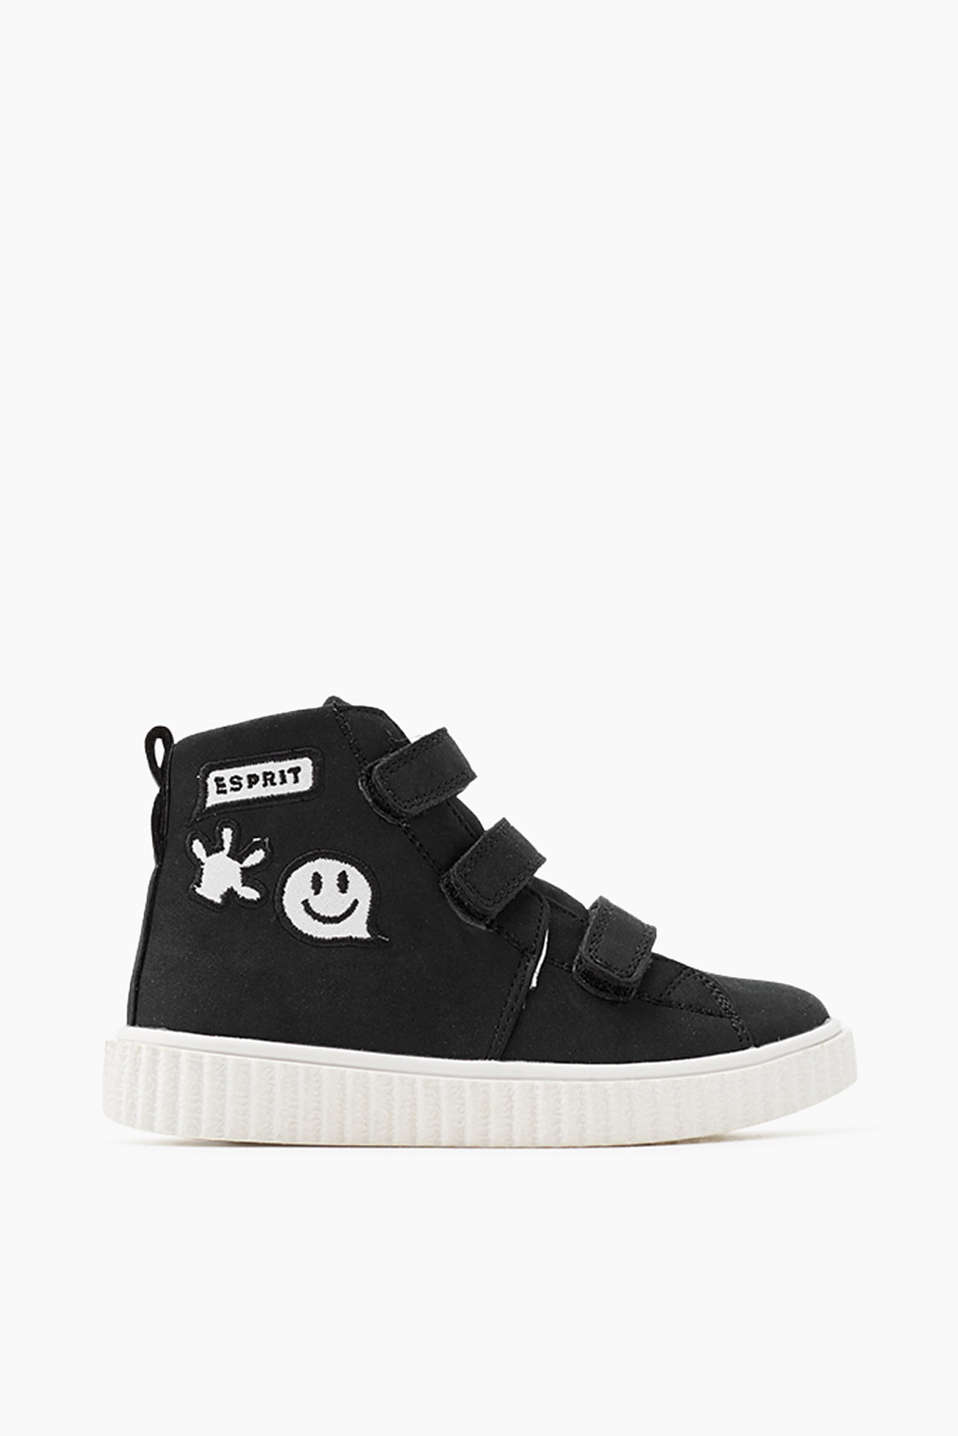 Esprit - High Top-Sneaker mit Patches